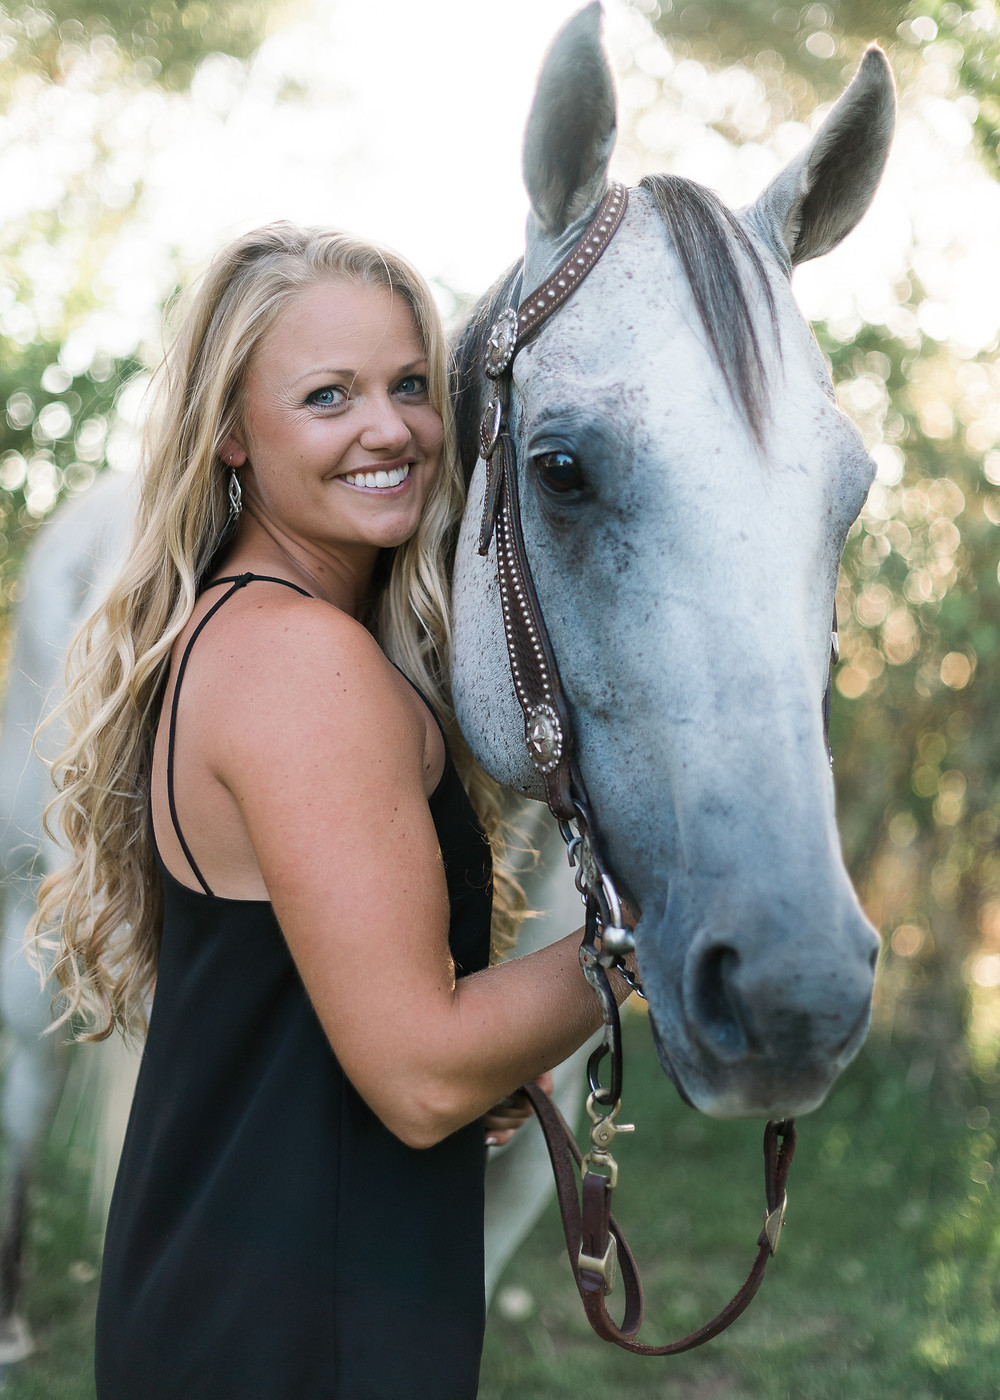 A girl and her horse